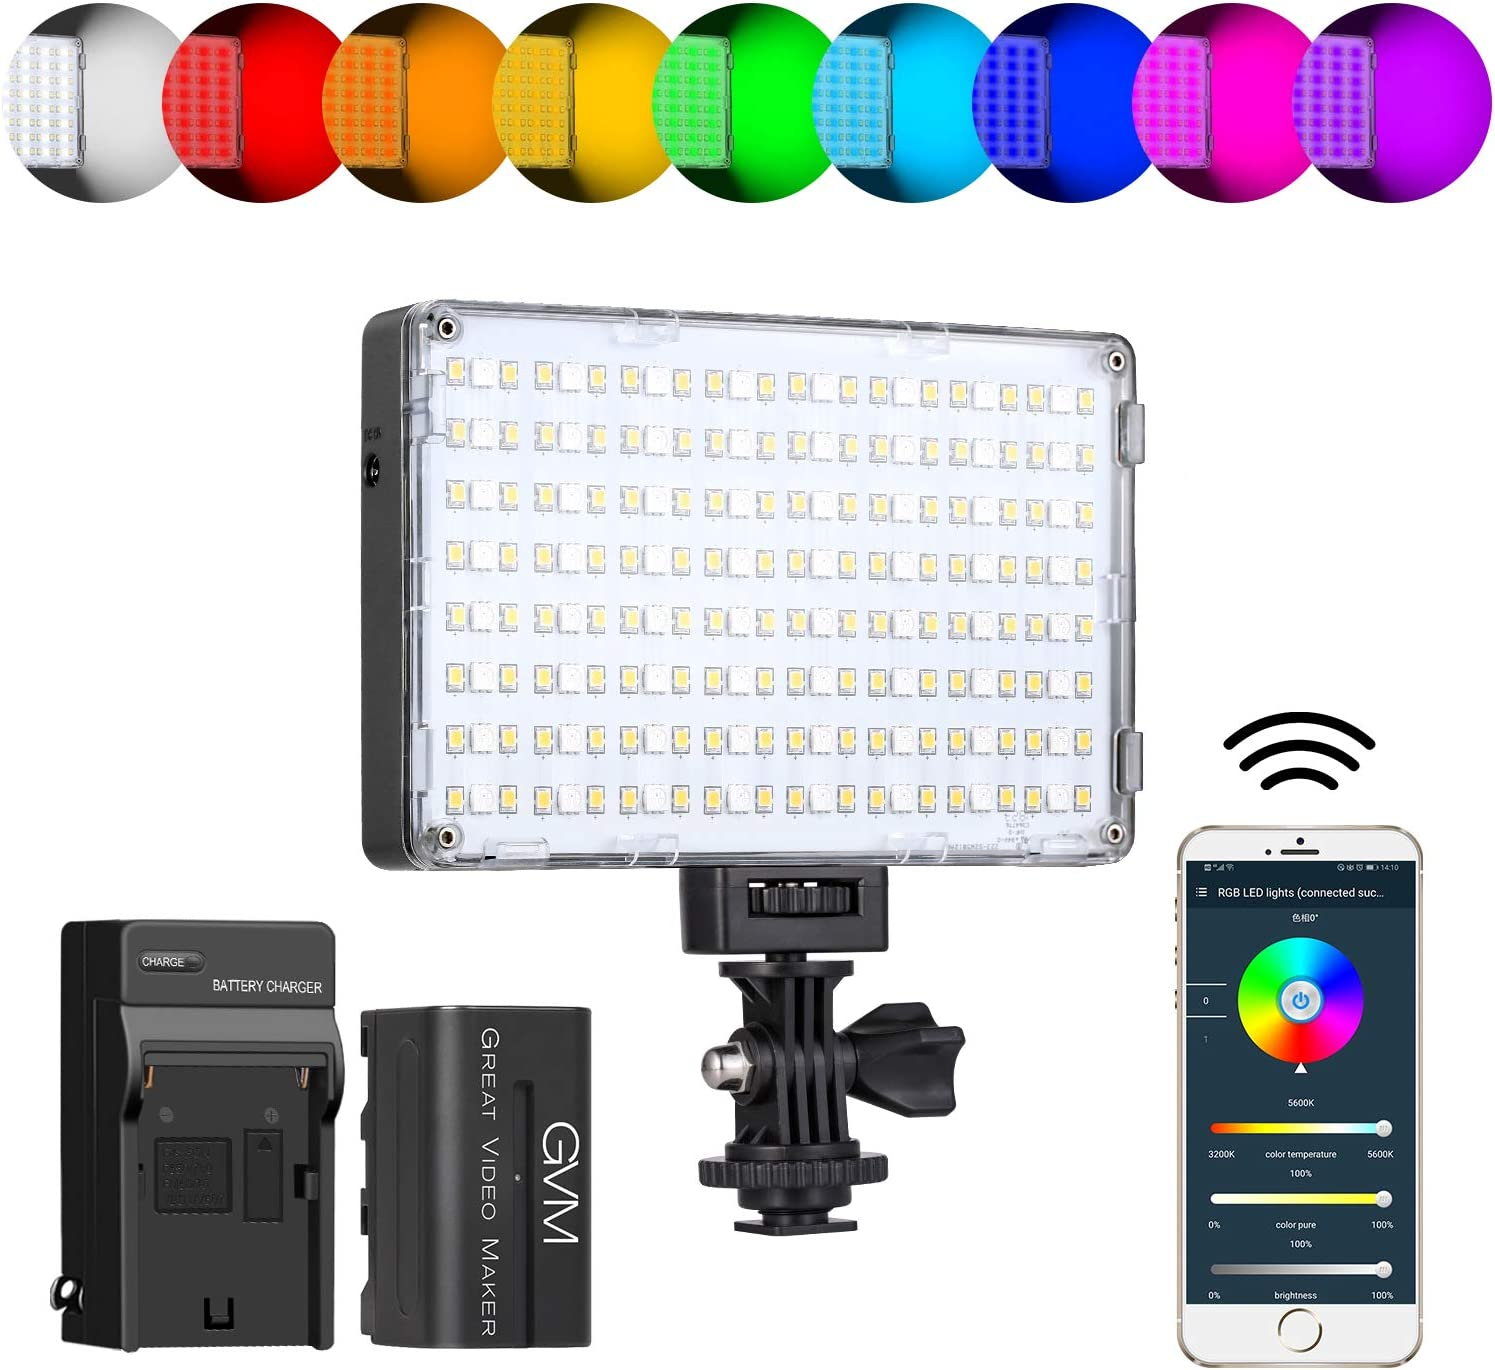 GVM RGB Video Light with APP Control, 360 ° Full Color Led Camera Light CRI97 + Dimmable 3200K-5600K Rechargable Led Video Light Panel for YouTube DSLR Camera Camcorder Photo Lighting, LCD Display